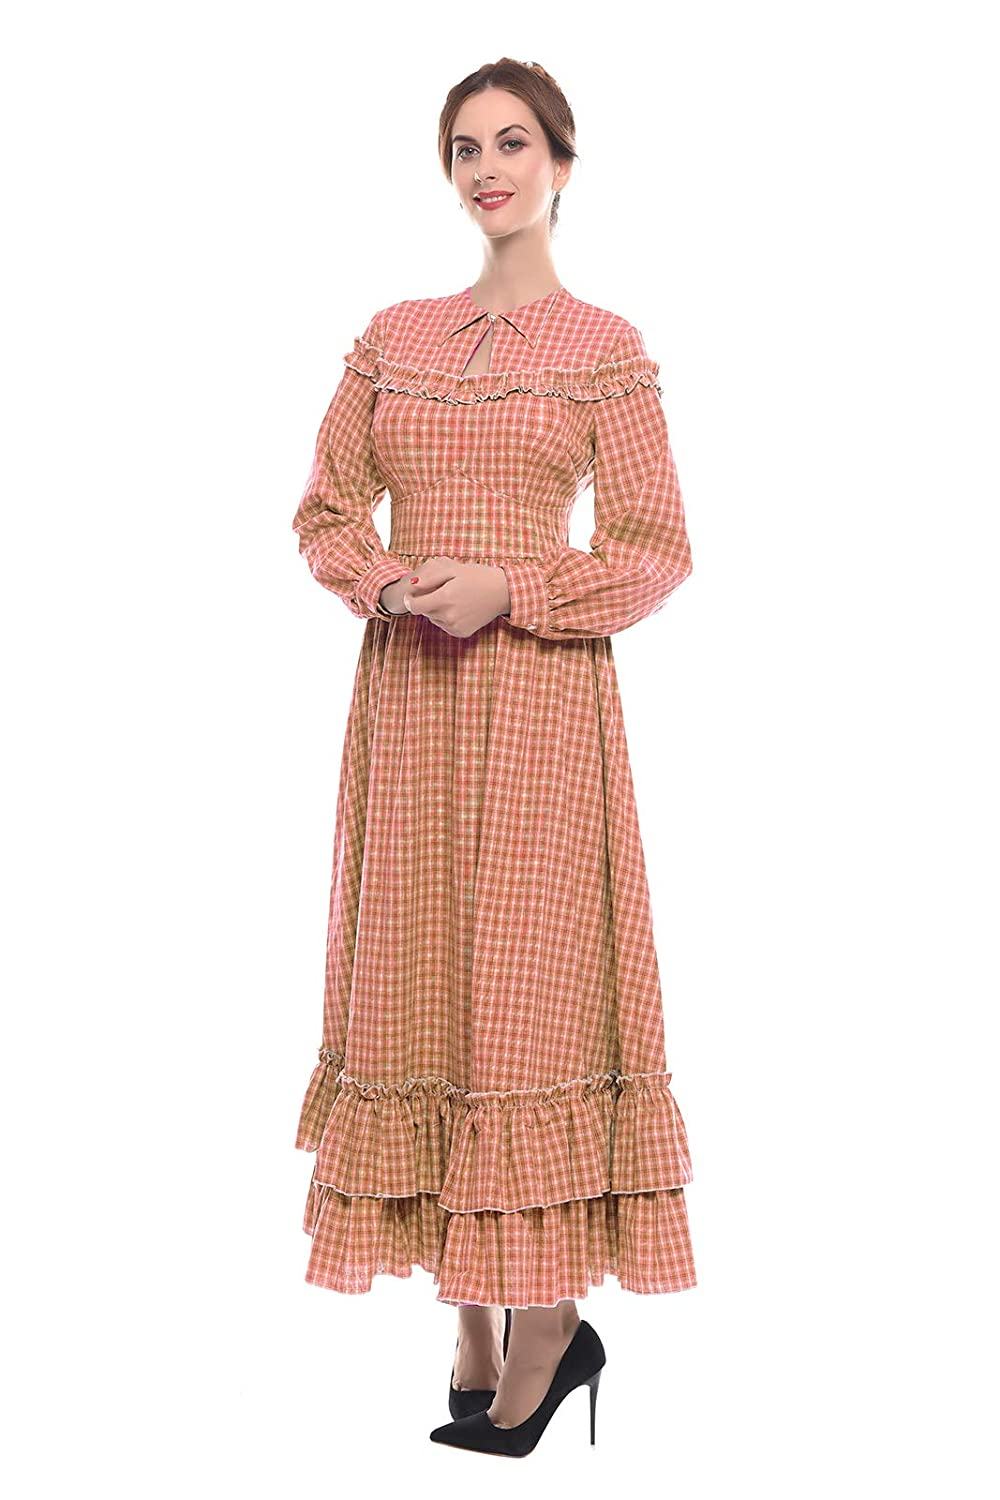 Cottagecore Clothing, Soft Aesthetic NSPSTT Women Girls American Pioneer Colonial Dress Prairie Costume $53.99 AT vintagedancer.com